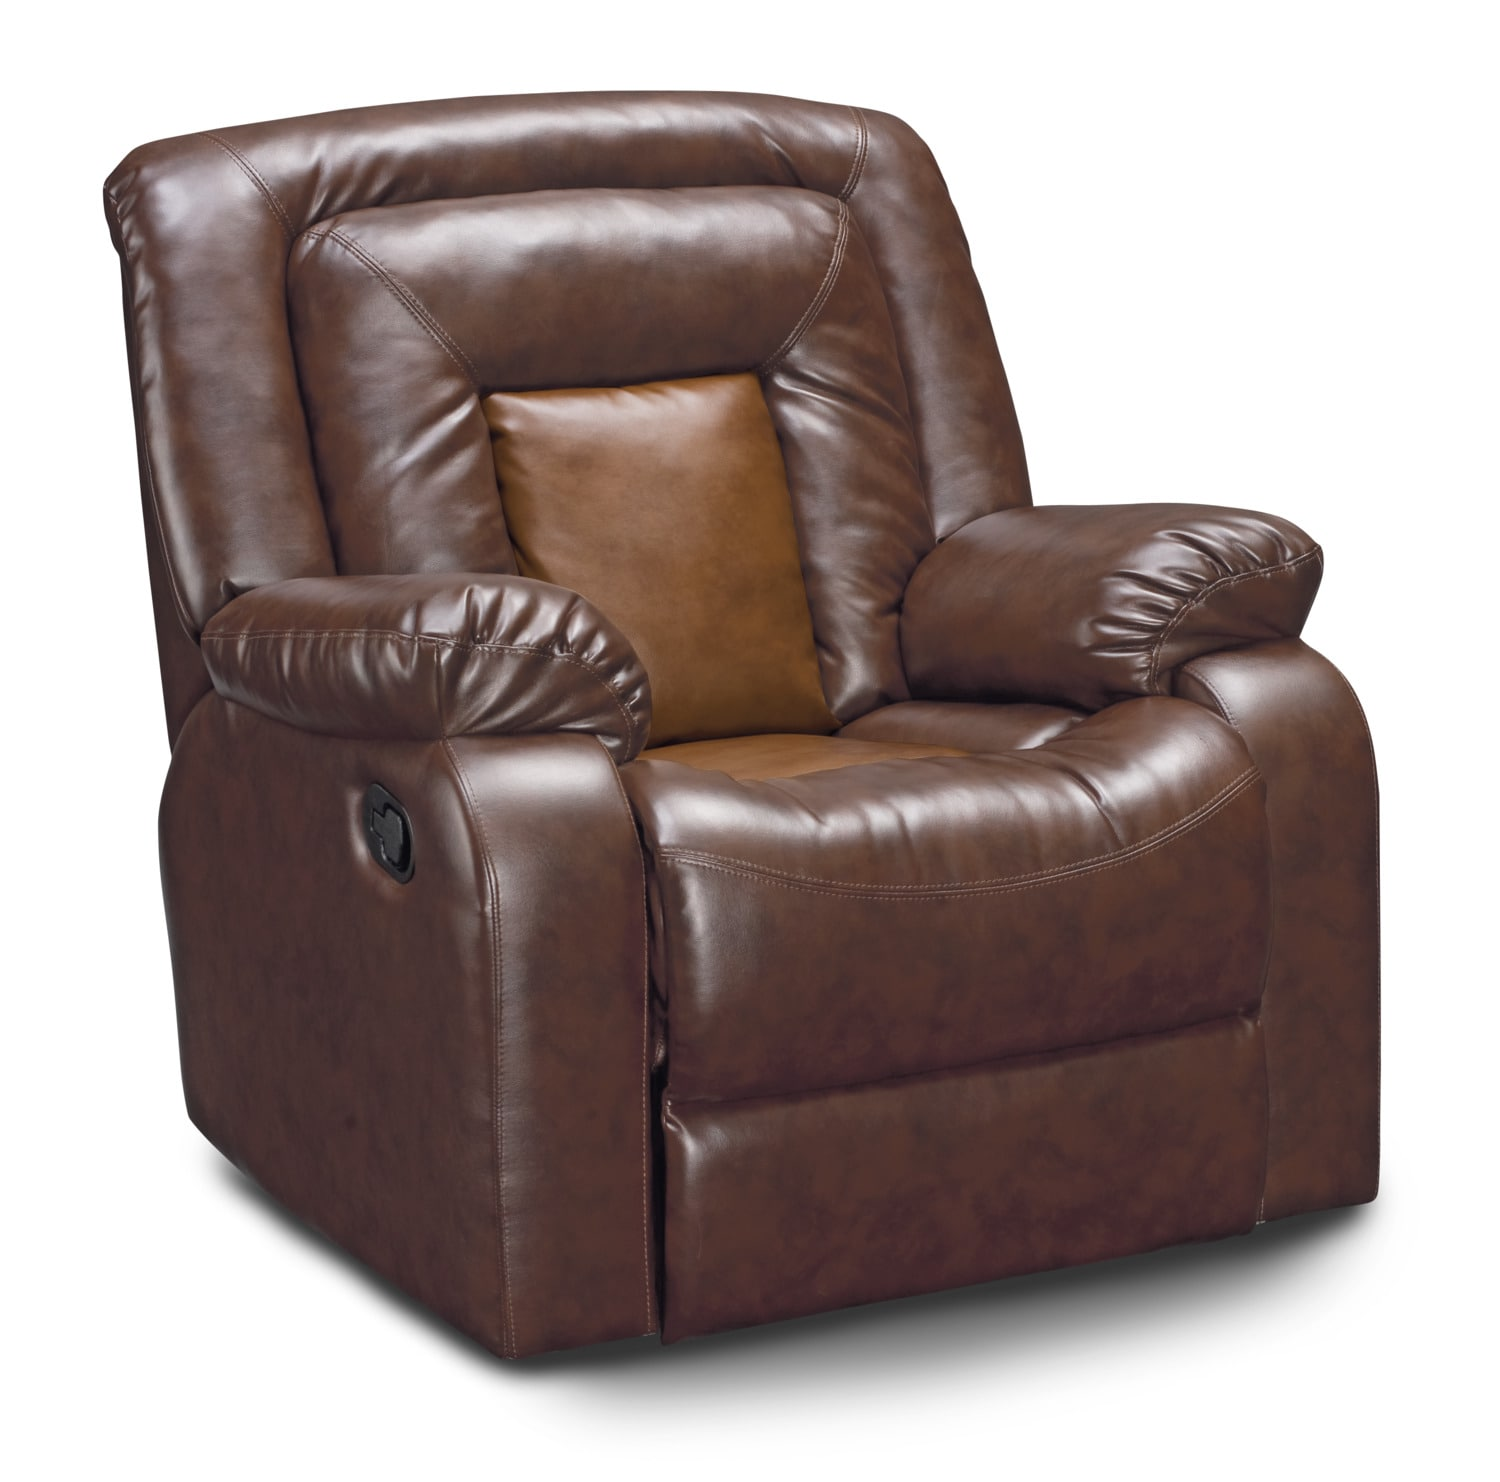 kian sofa home furnishings item dual number boulevard recliner products reclining